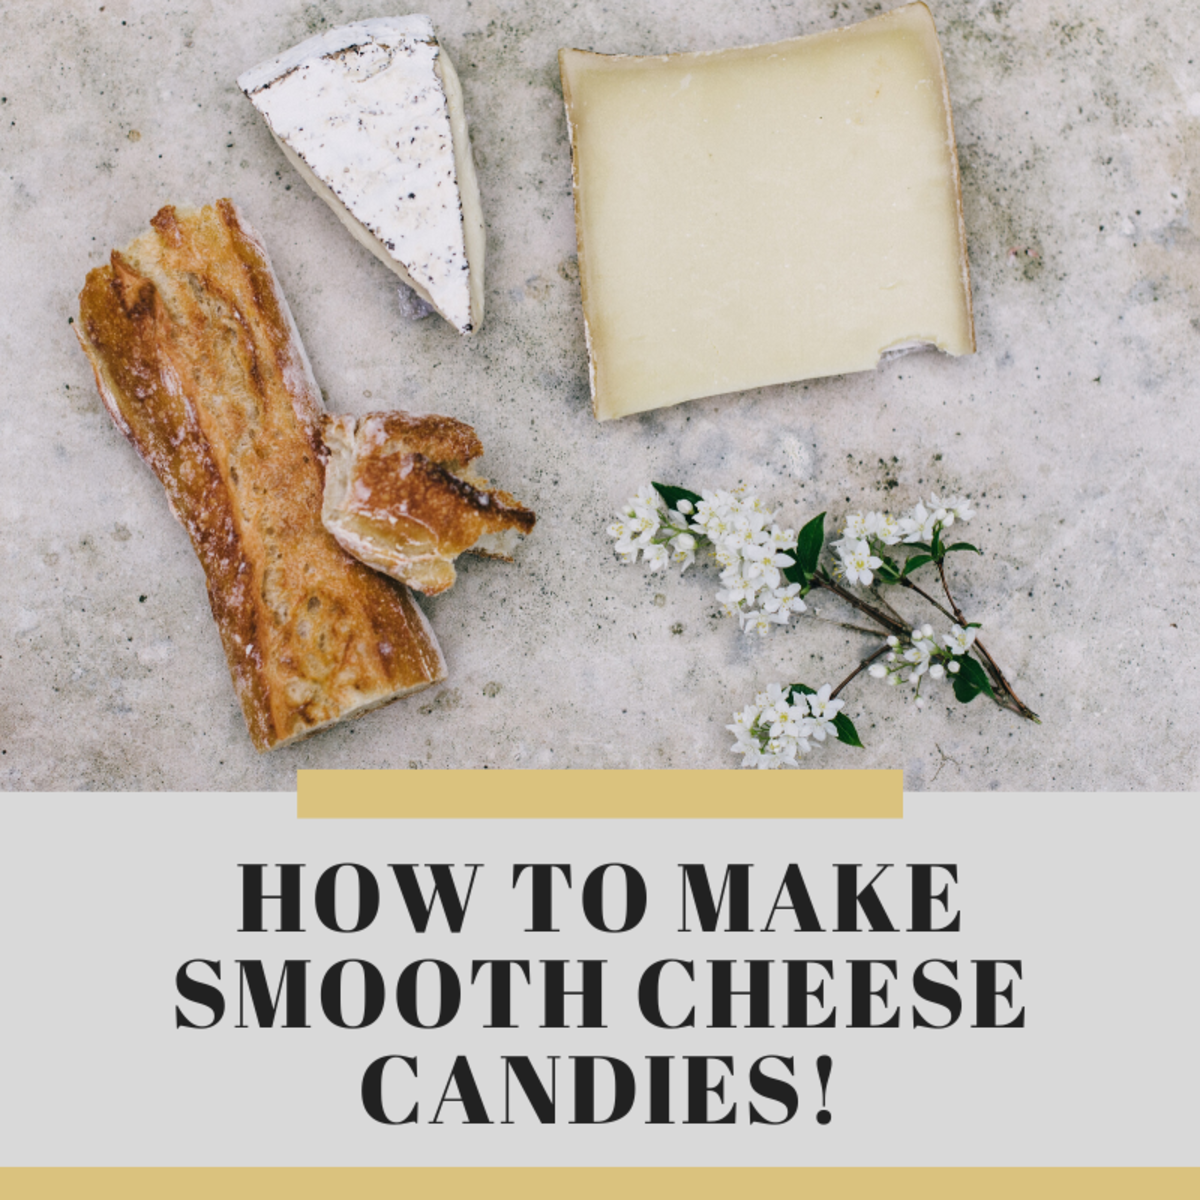 Recipes for Smooth Cheese Candies